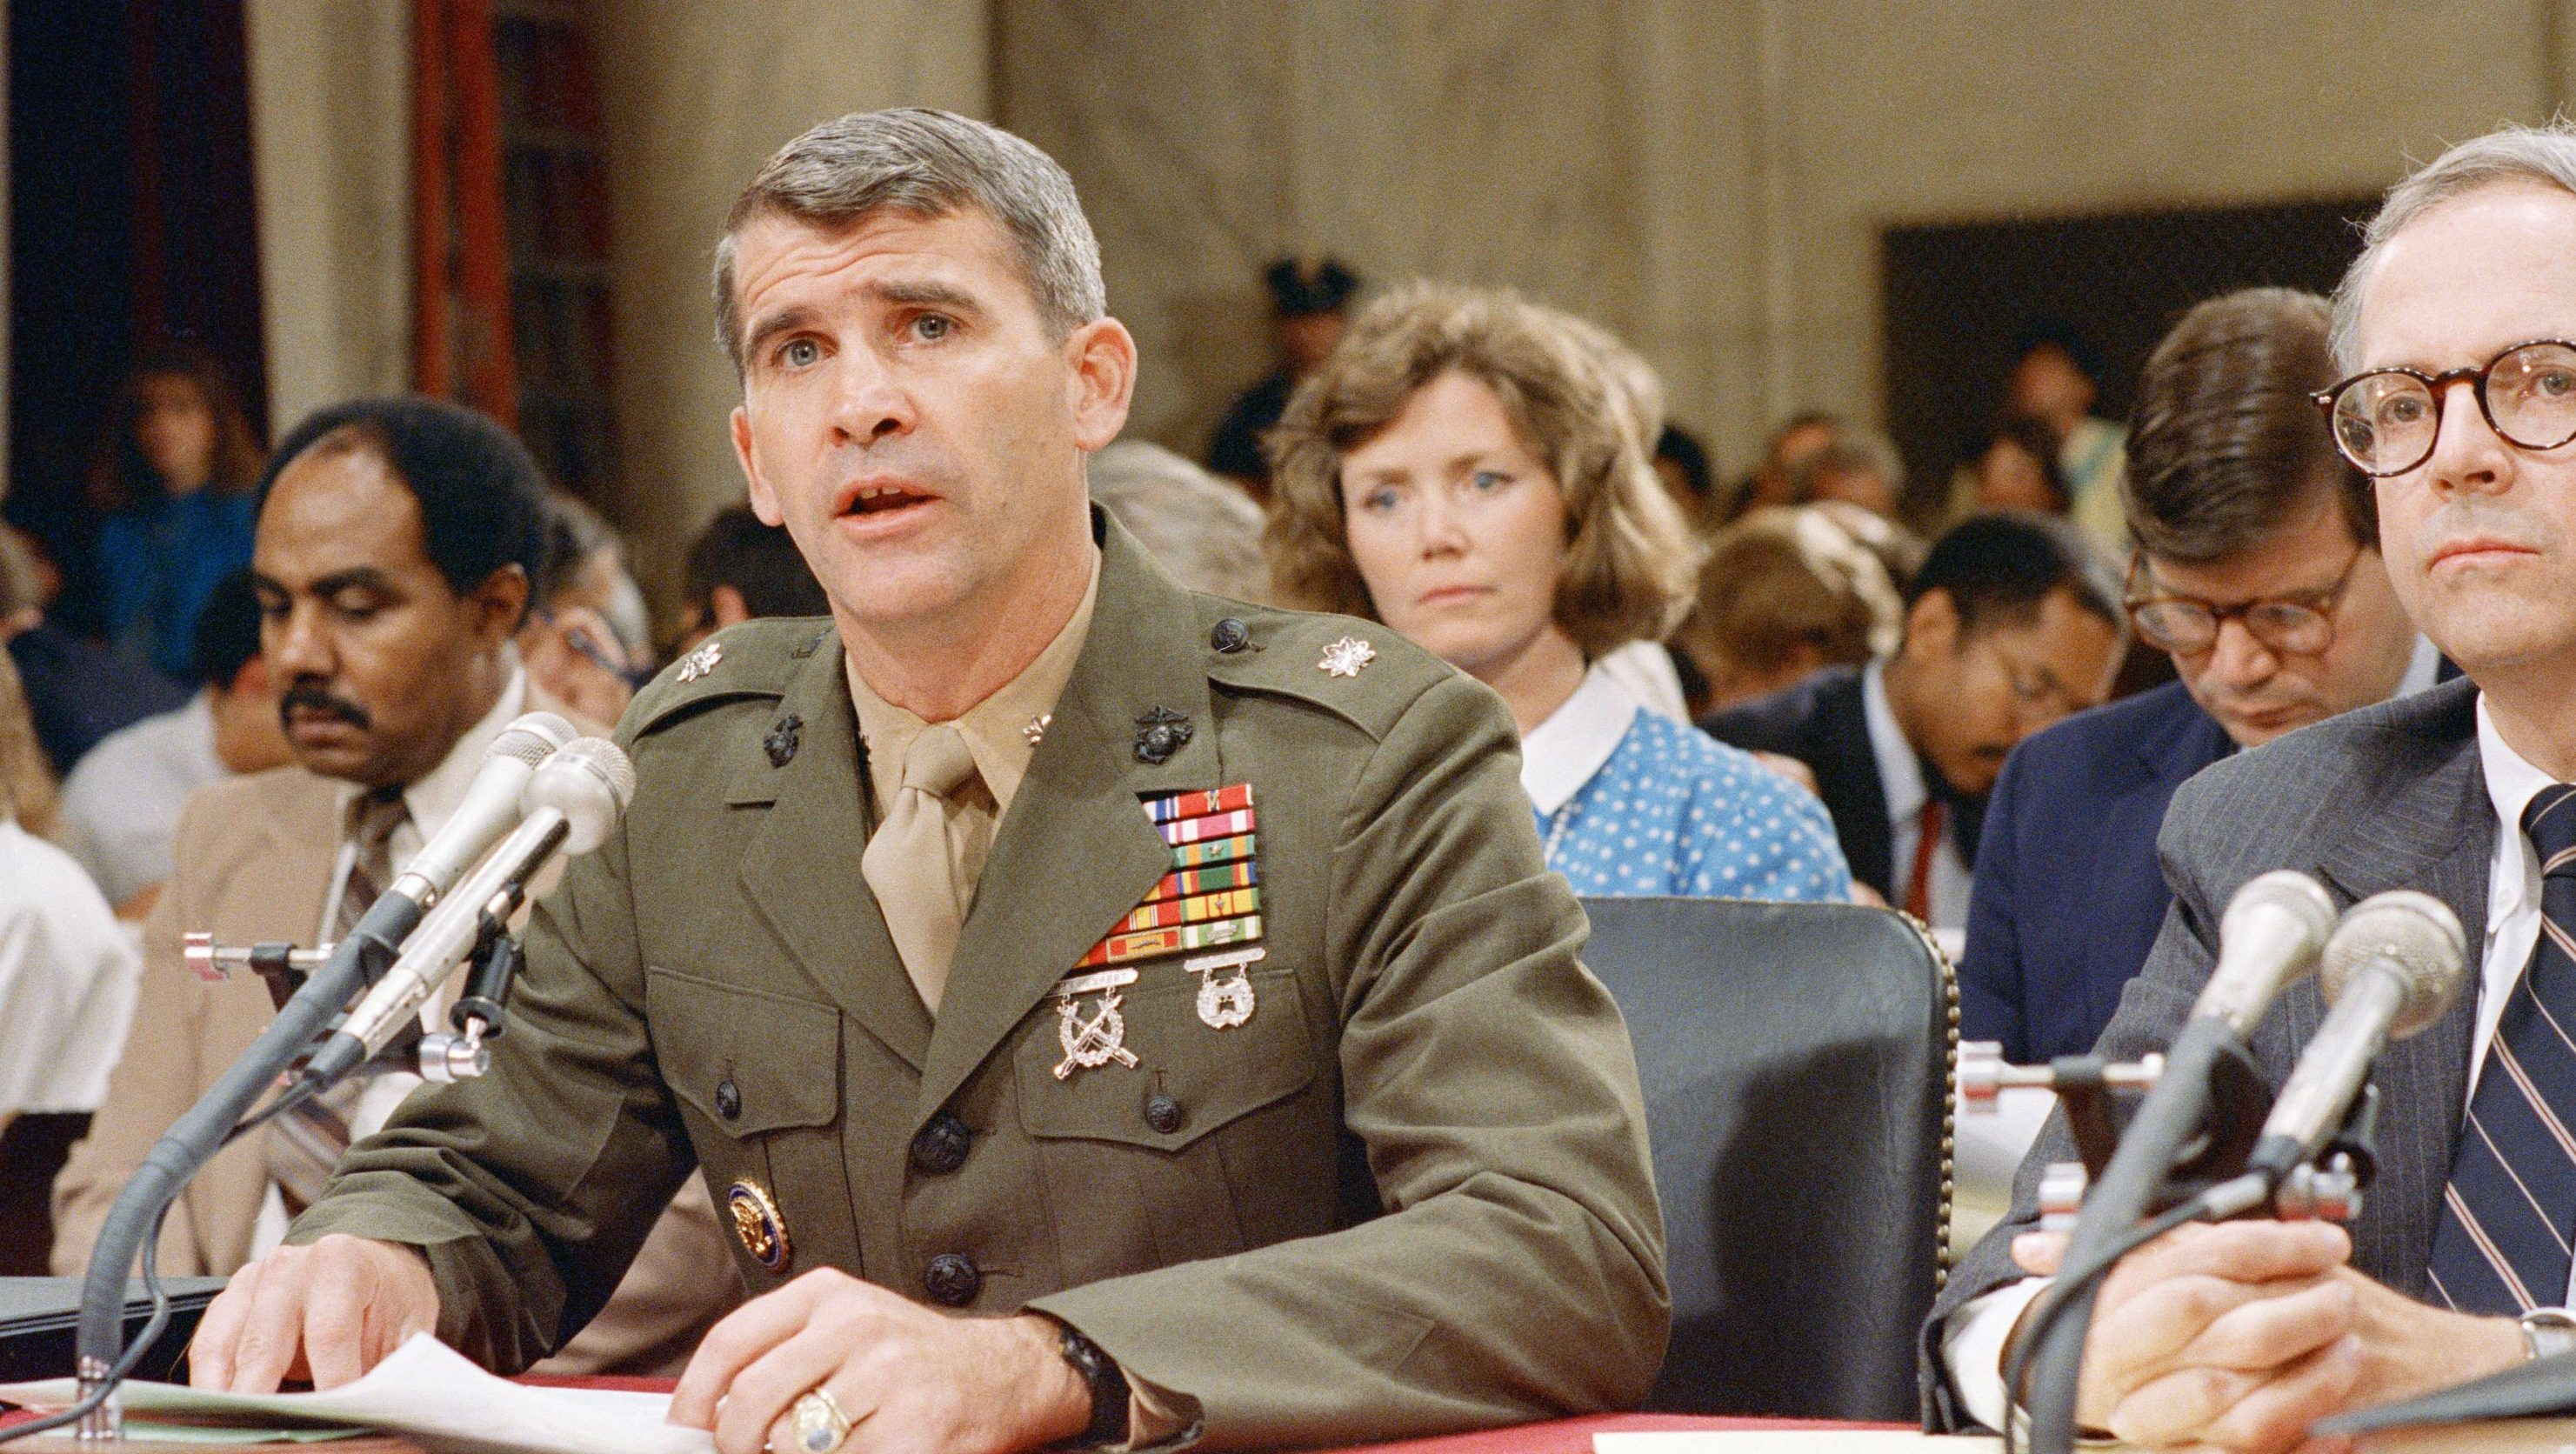 t. Col. Oliver North reads his opening statement at the start of his third day of testimony before a congressional committee holding hearings on the Iran-Contra affair on Capitol Hill in Washington, July 9, 1987. North?s wife Betsy looks on over his shoulder. (AP Photo/J. Scott Applewhite)